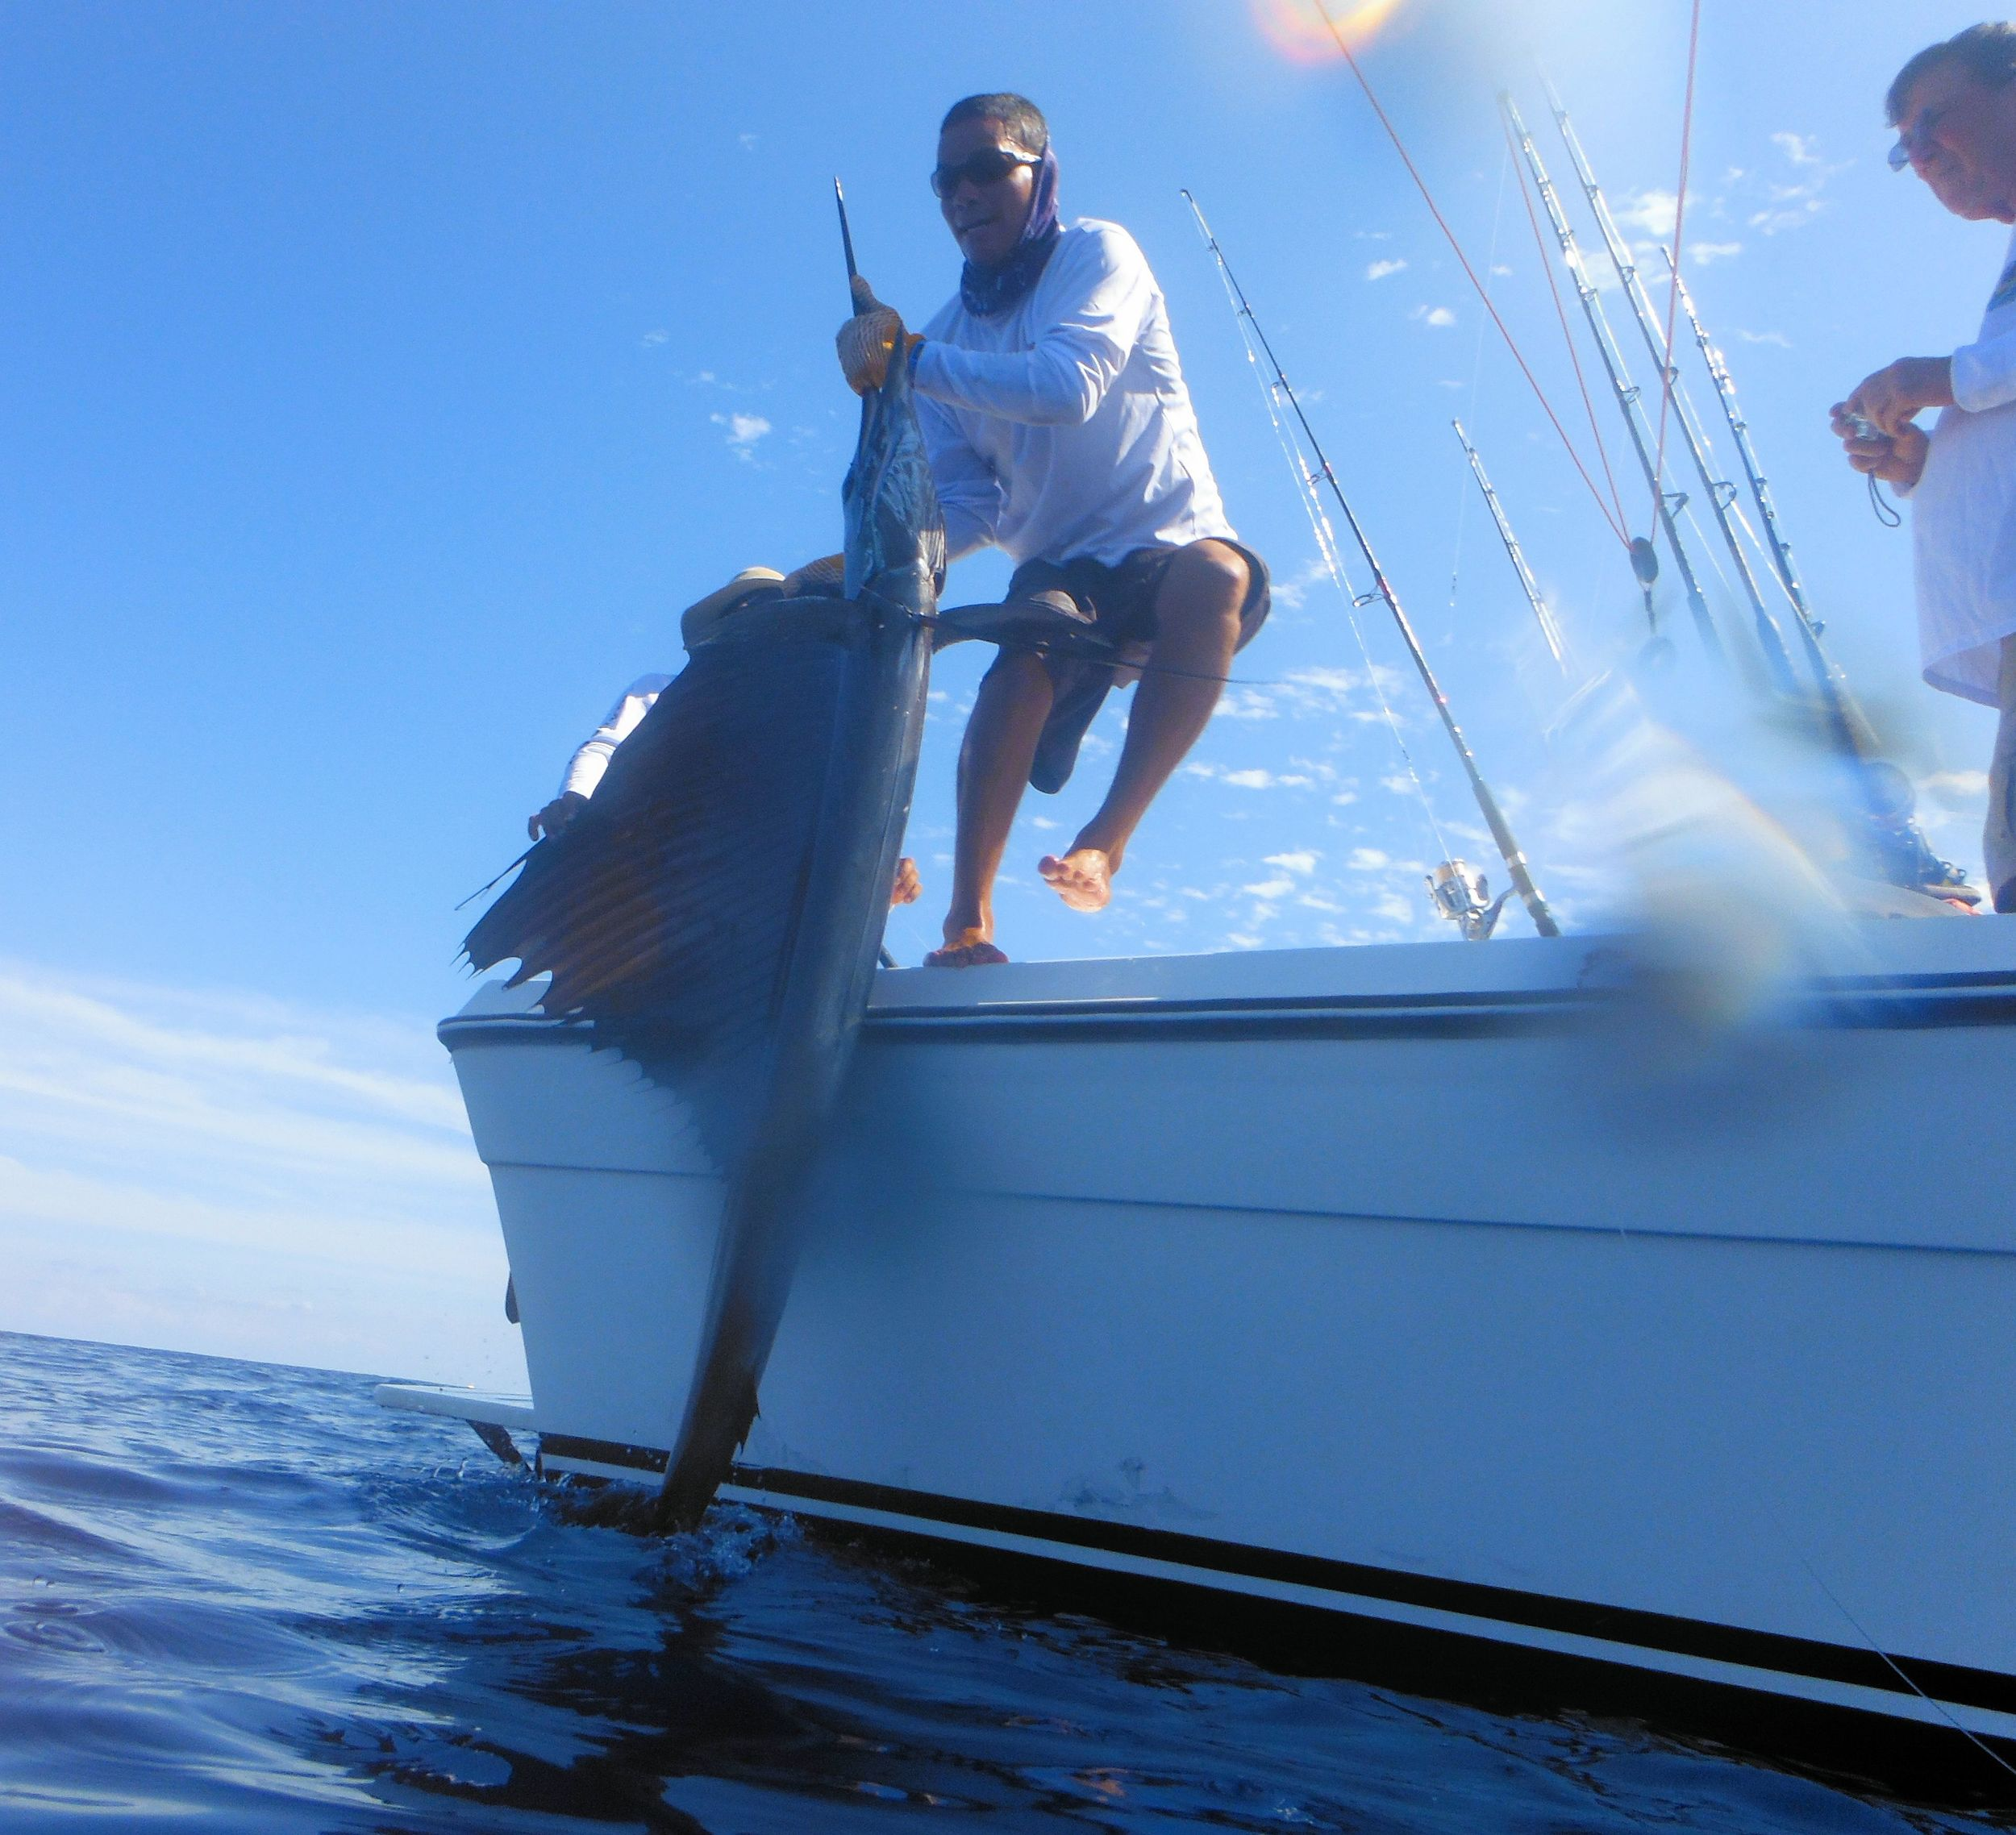 First mate Kevin jumps in to release a sailfish on the Moonwalker- January 23.